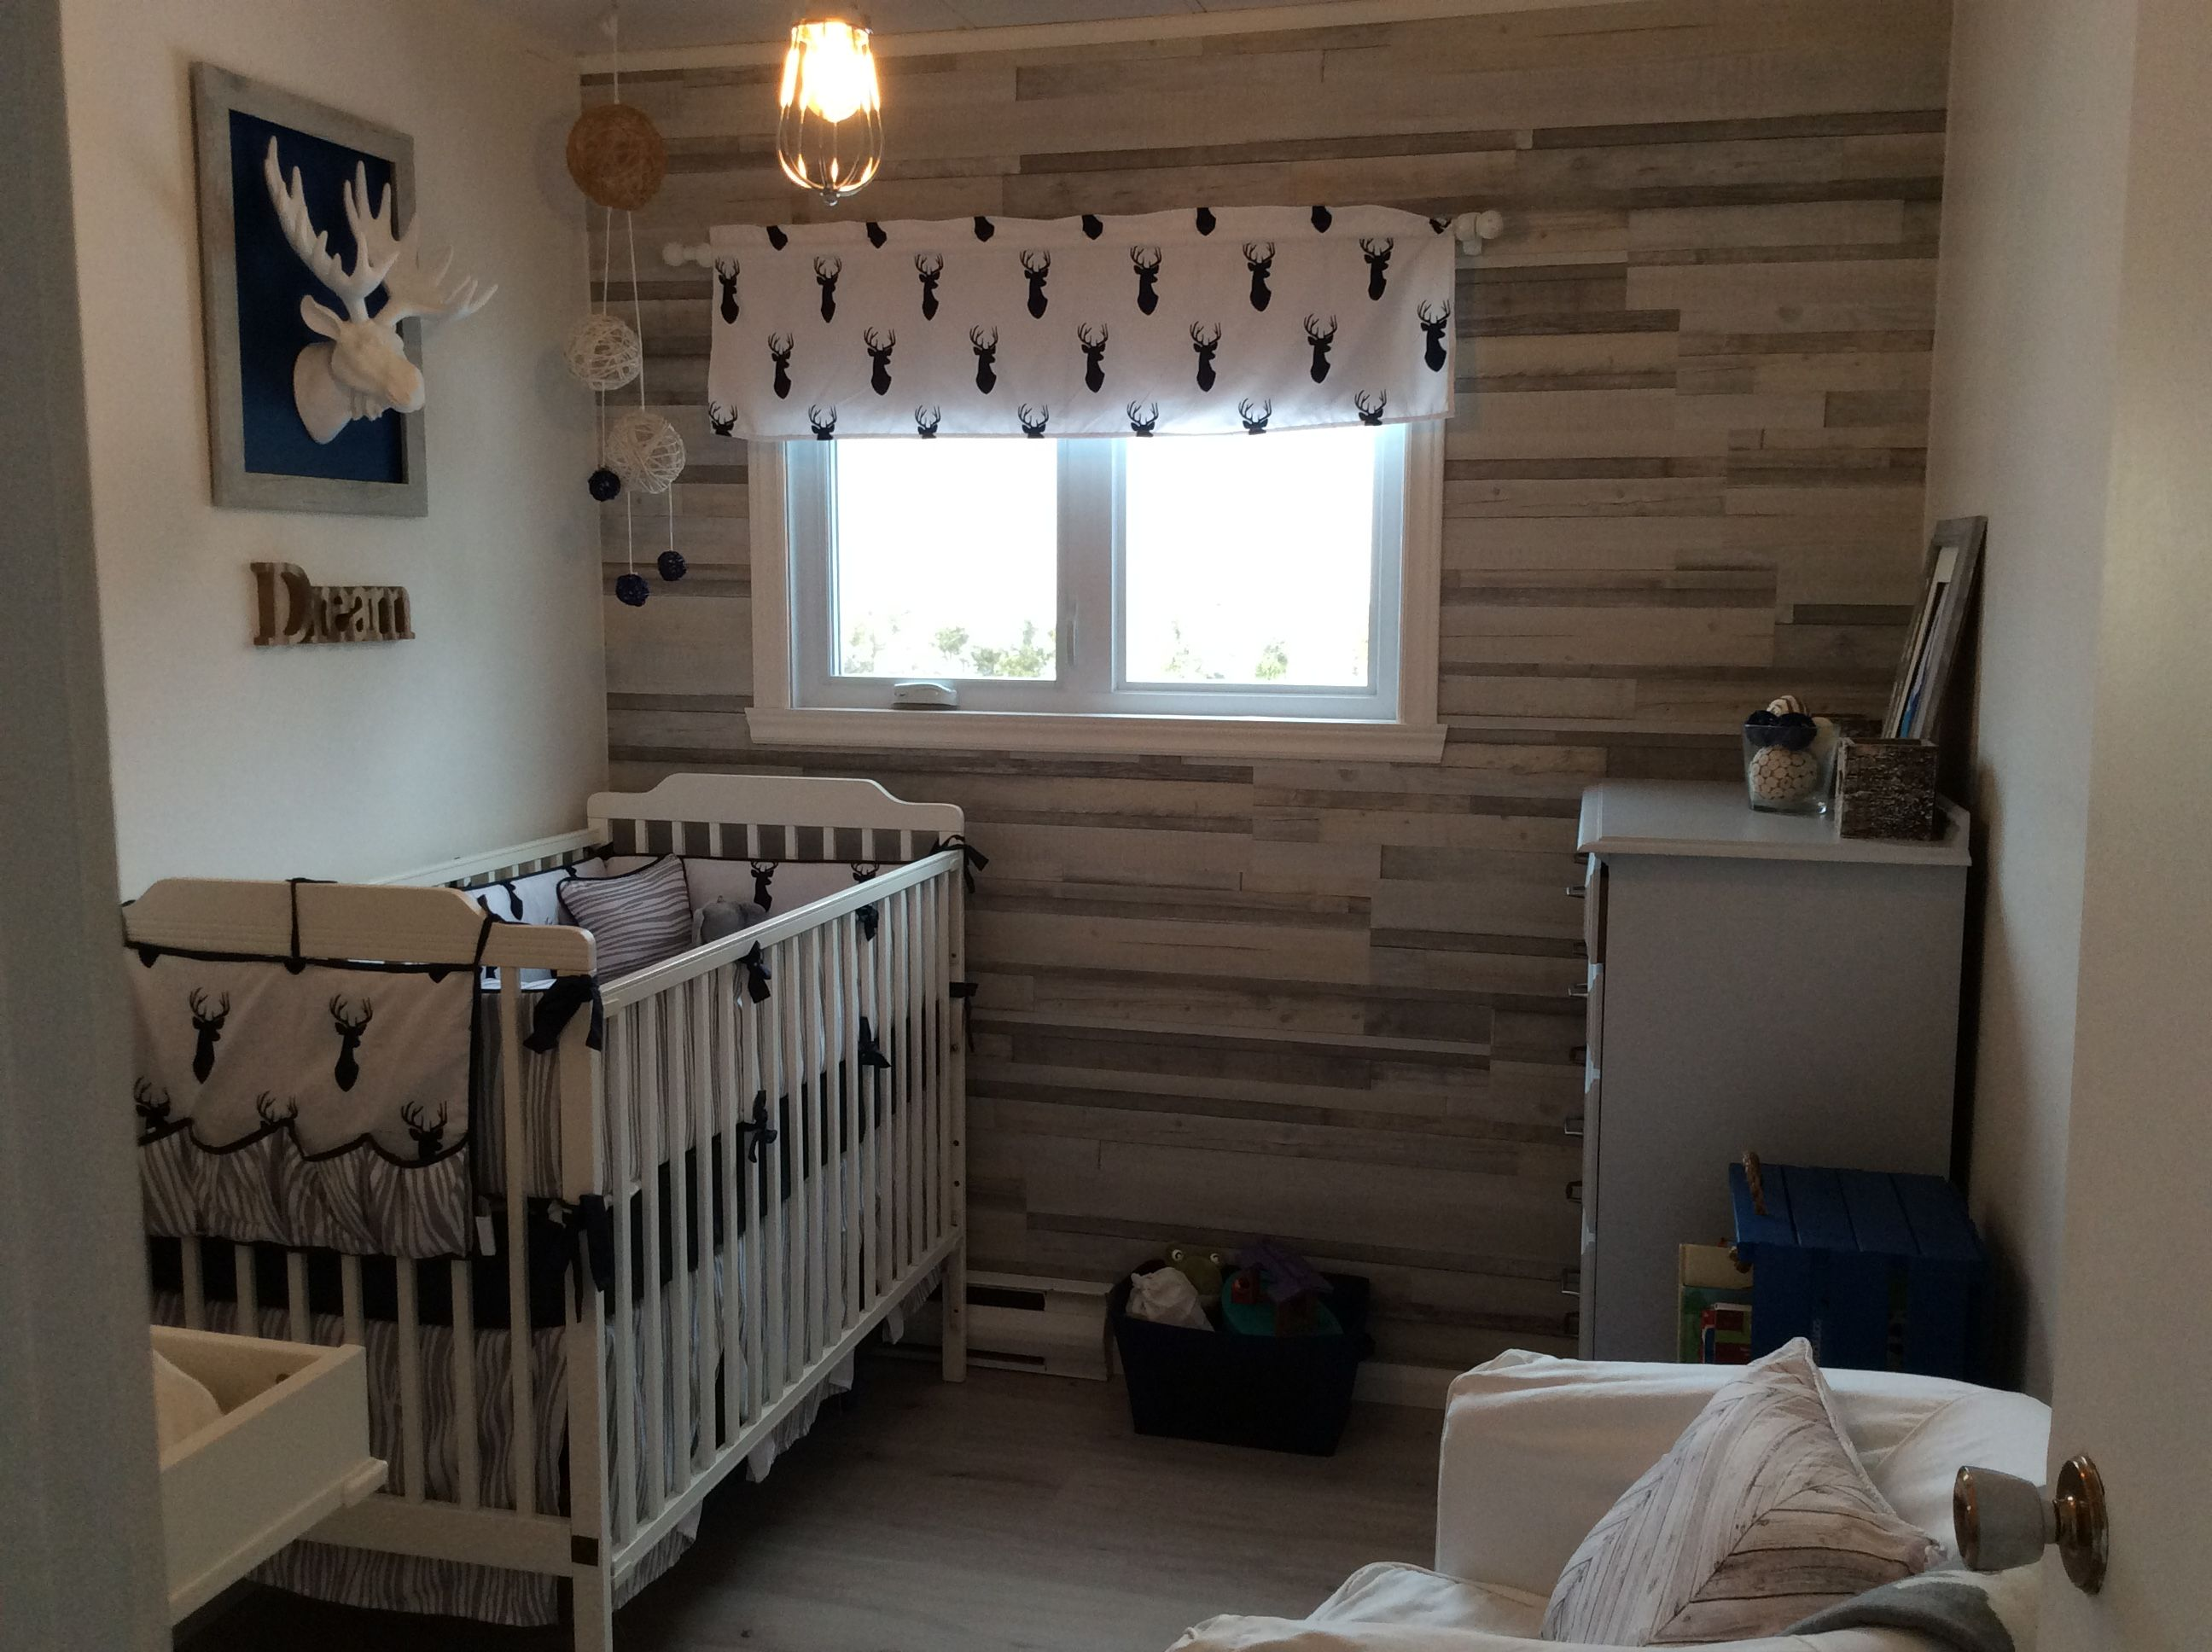 Chambre th matique chalet pour b b gar on chalet - Collection chambre bebe garcon ...